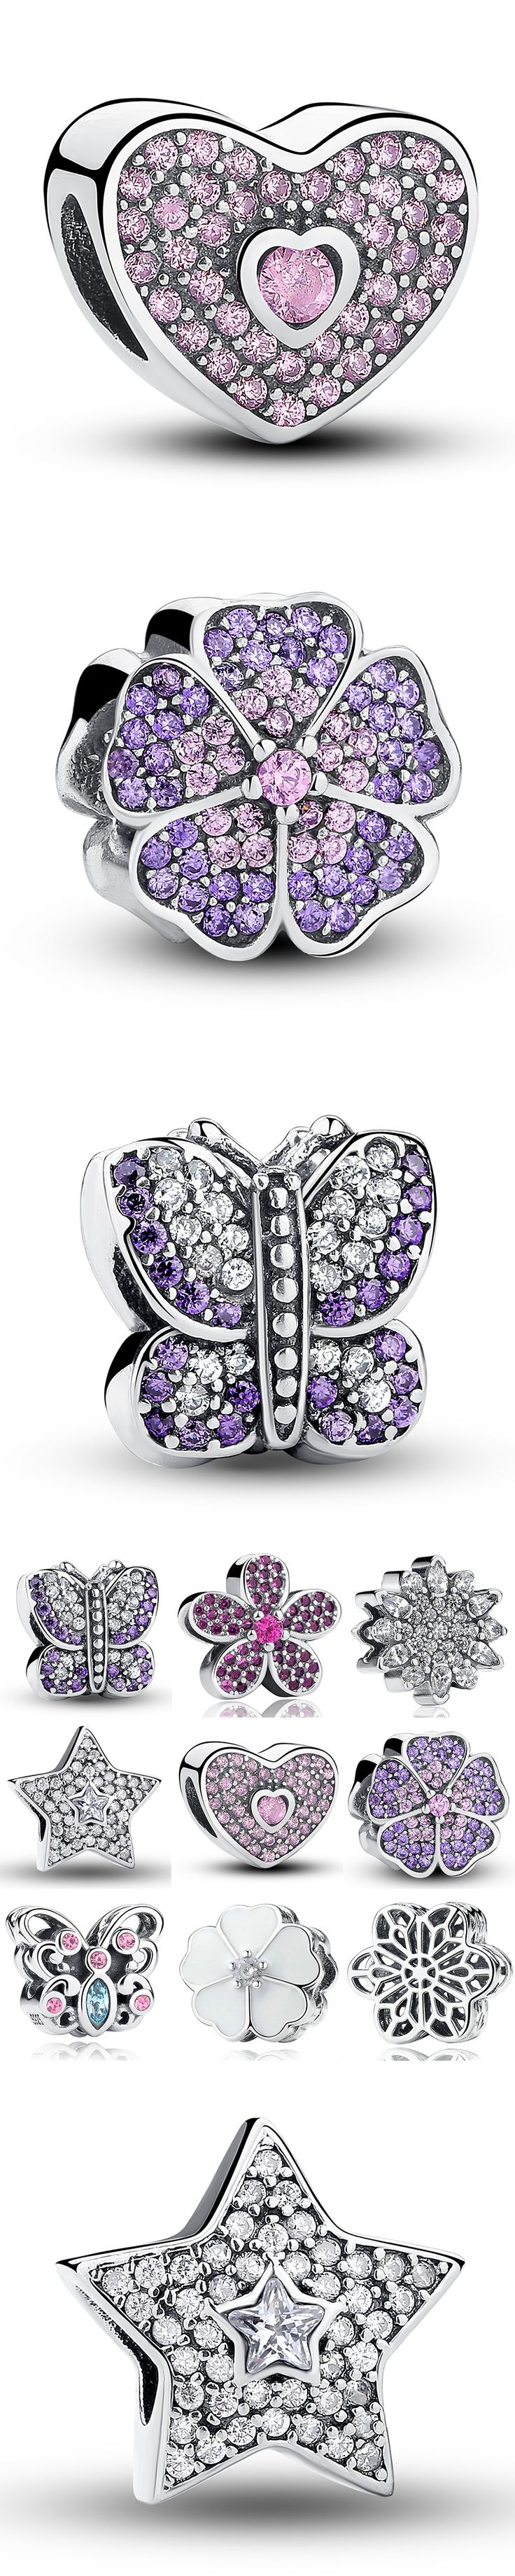 Silver 925 original 925 Sterling Silver Charms Snowflake Star  Purple Flower Butterfly Charm Fit Pandora Bracelet